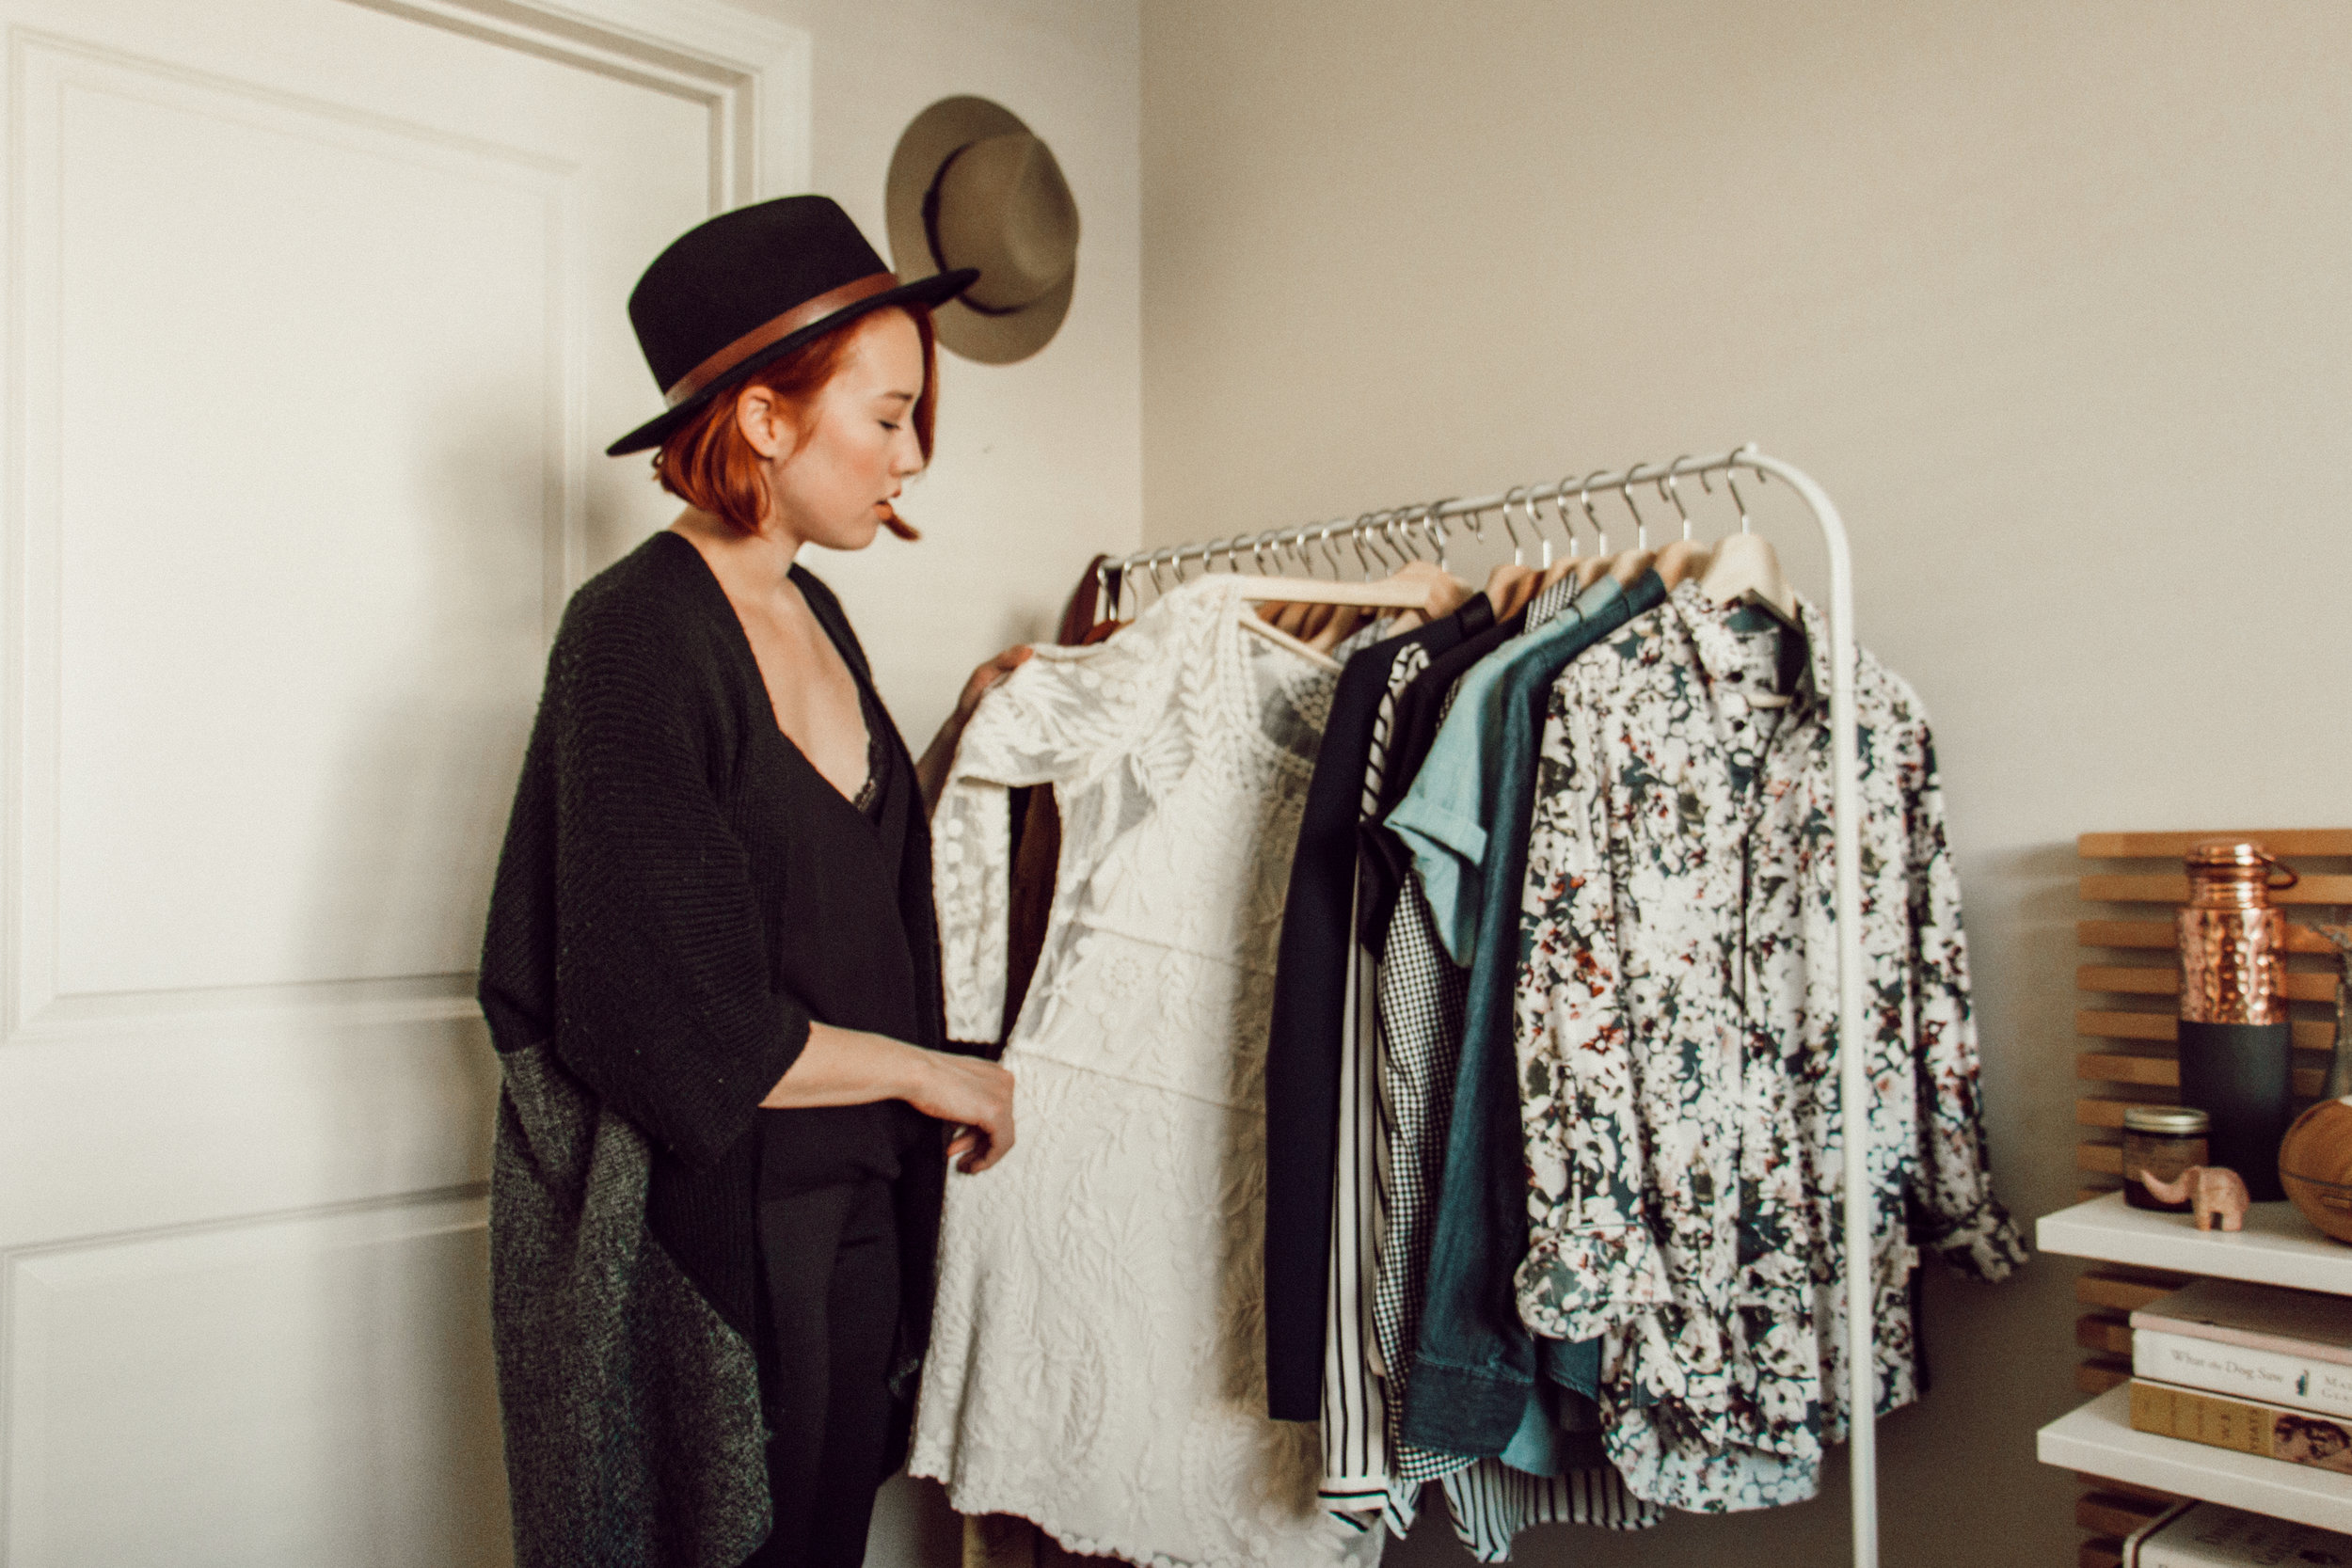 How I Made Over $1,300 Selling My Clothes On Poshmark